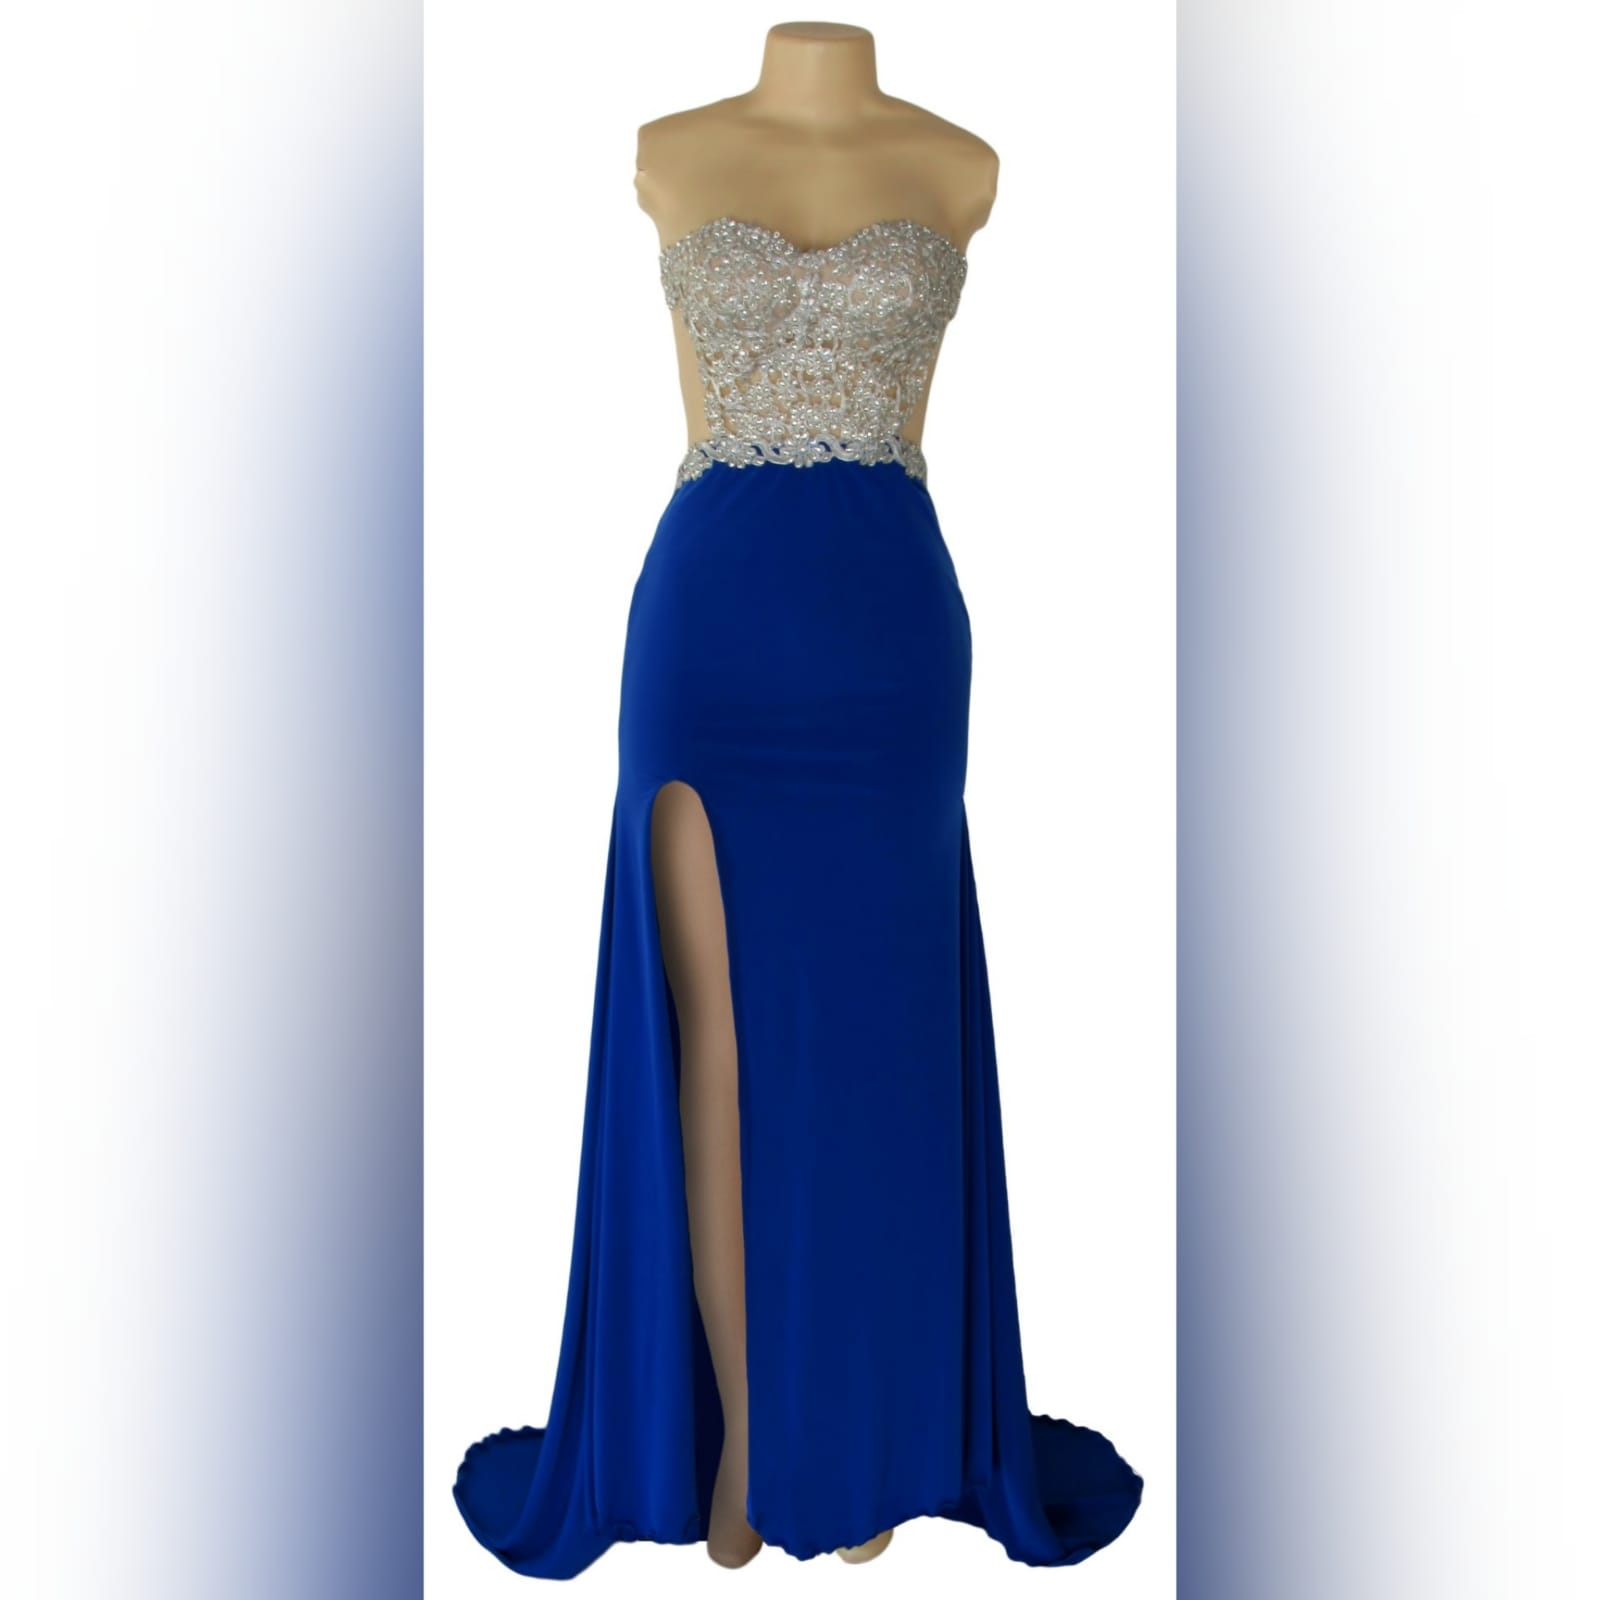 Royal blue and silver sexy ceremony dress 4 royal blue and silver sexy ceremony dress. Designed and made for a prom dance. With a lace and beaded boobtube bodice, a naked back and flowy bottom with a slit and a train.